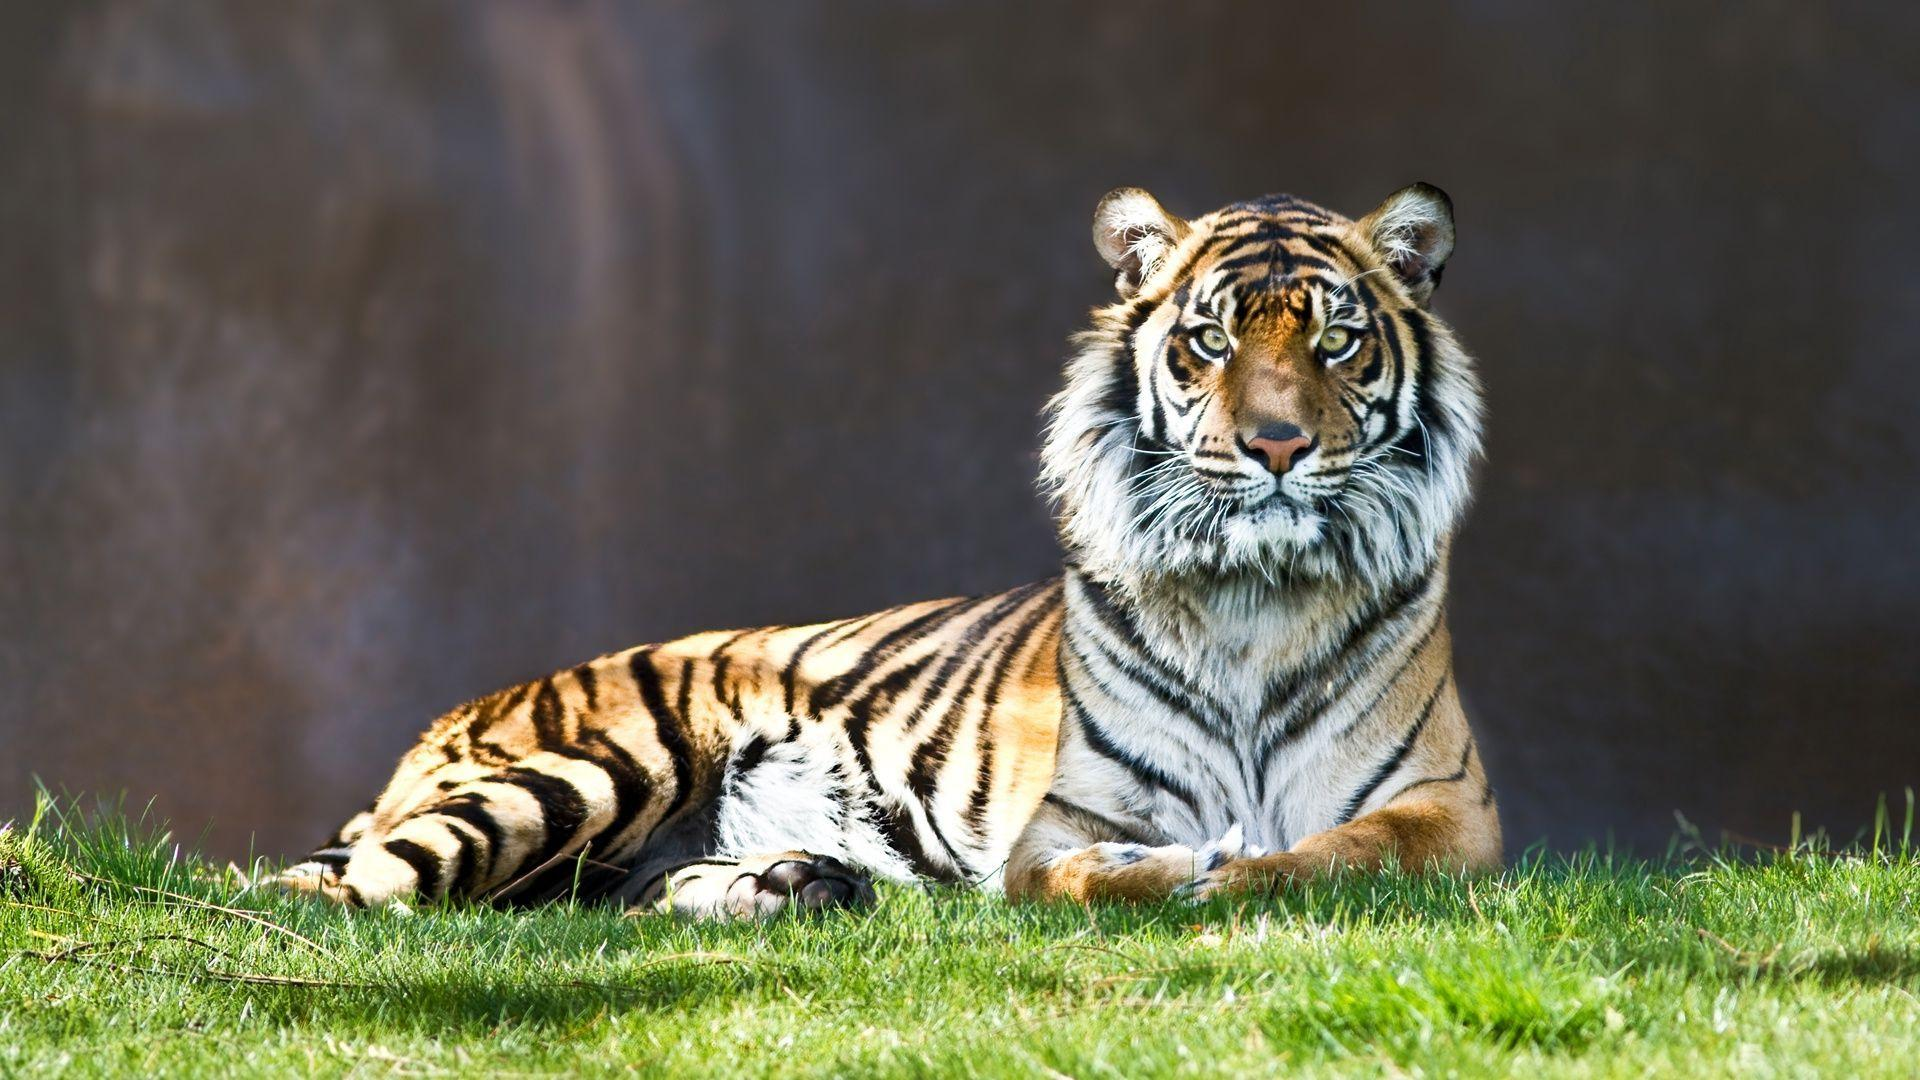 tiger sitting in the grass hd desktop wallpaper : widescreen